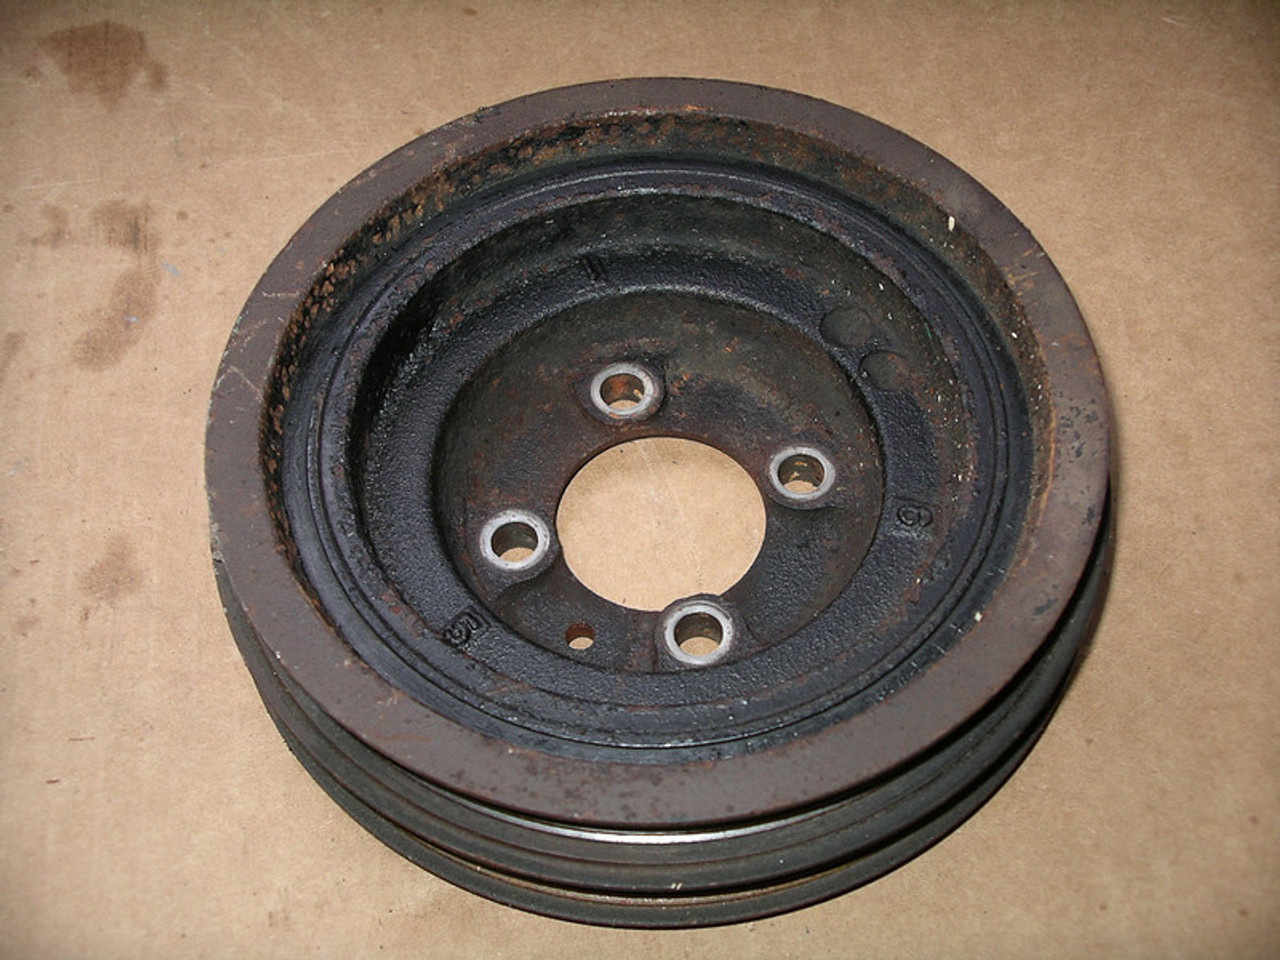 Crankshaft pulley for 6bolt 4G63 (minor damage)